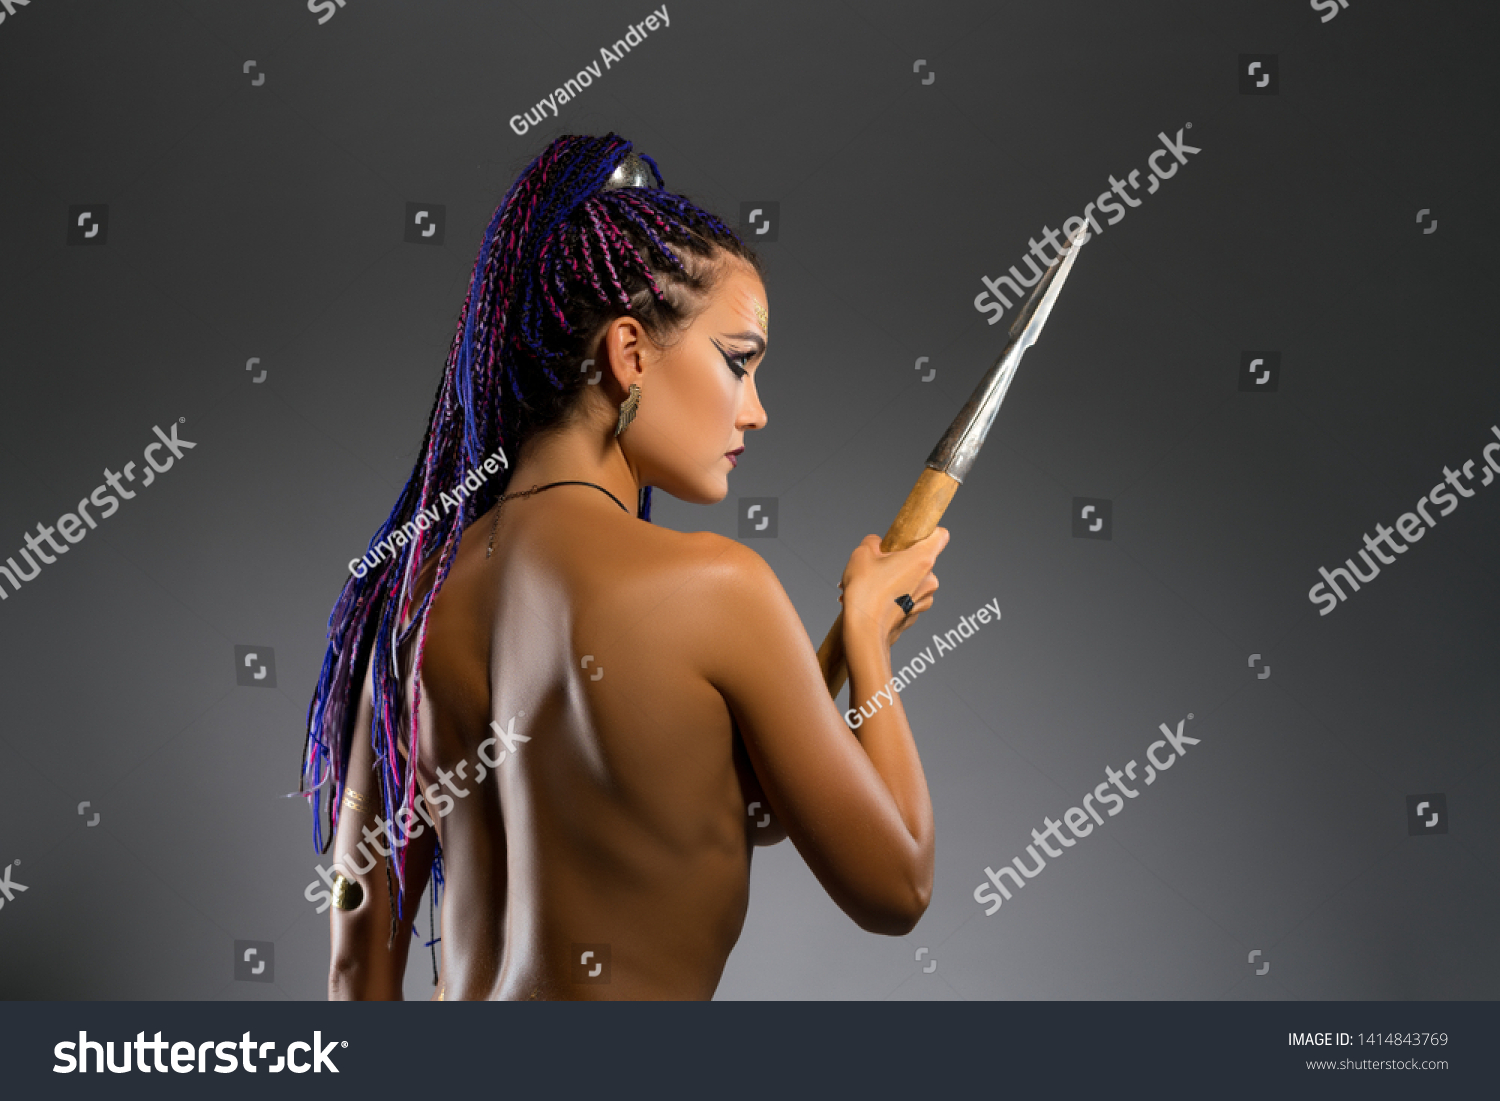 Amazon Nude Pic amazon nude spear rearview   people, beauty/fashion stock image